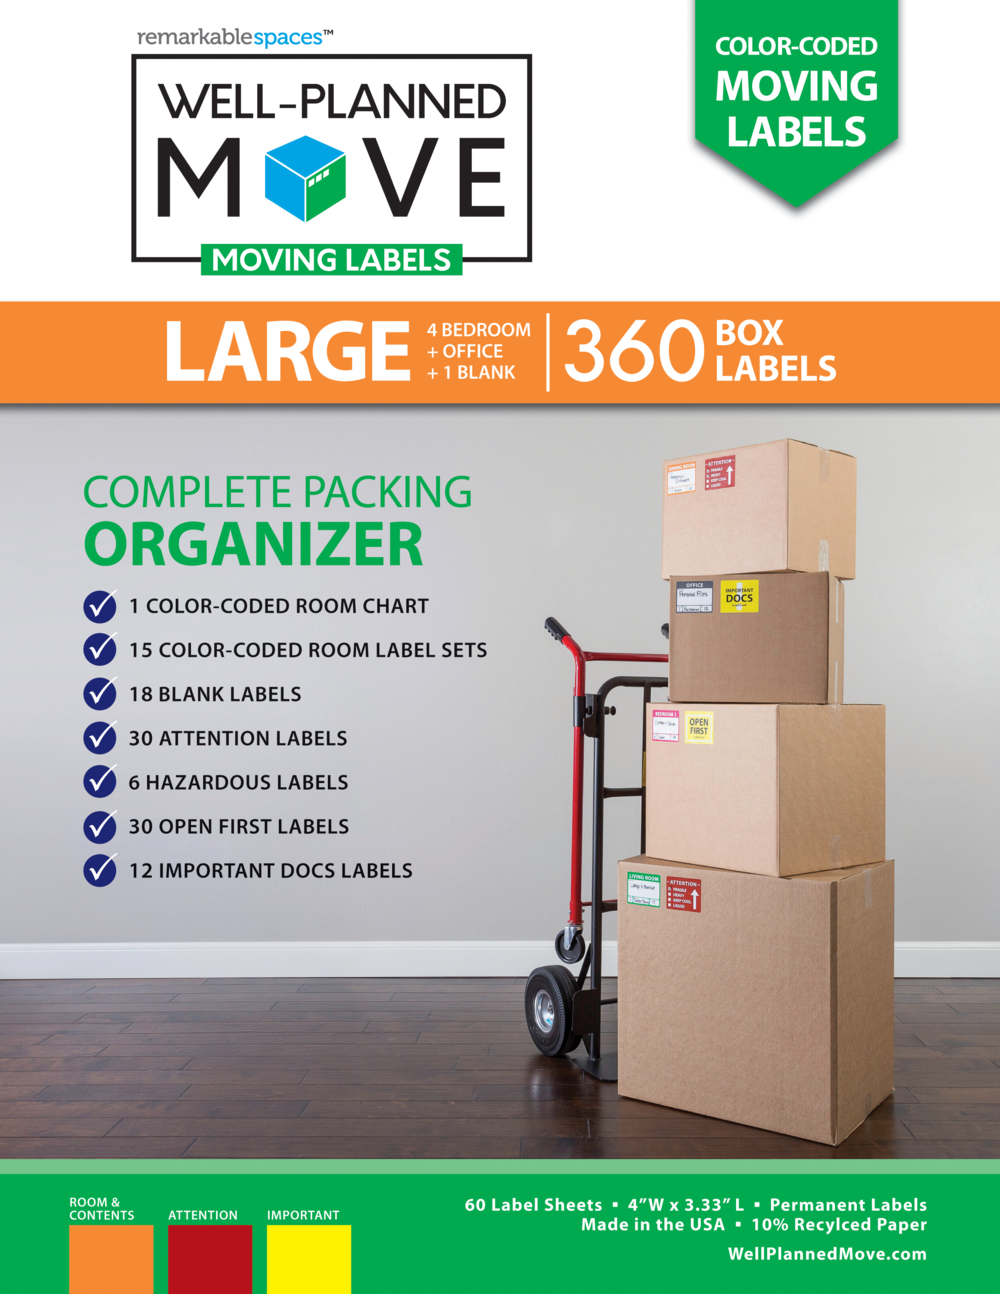 Well-Planned Move Moving Labels